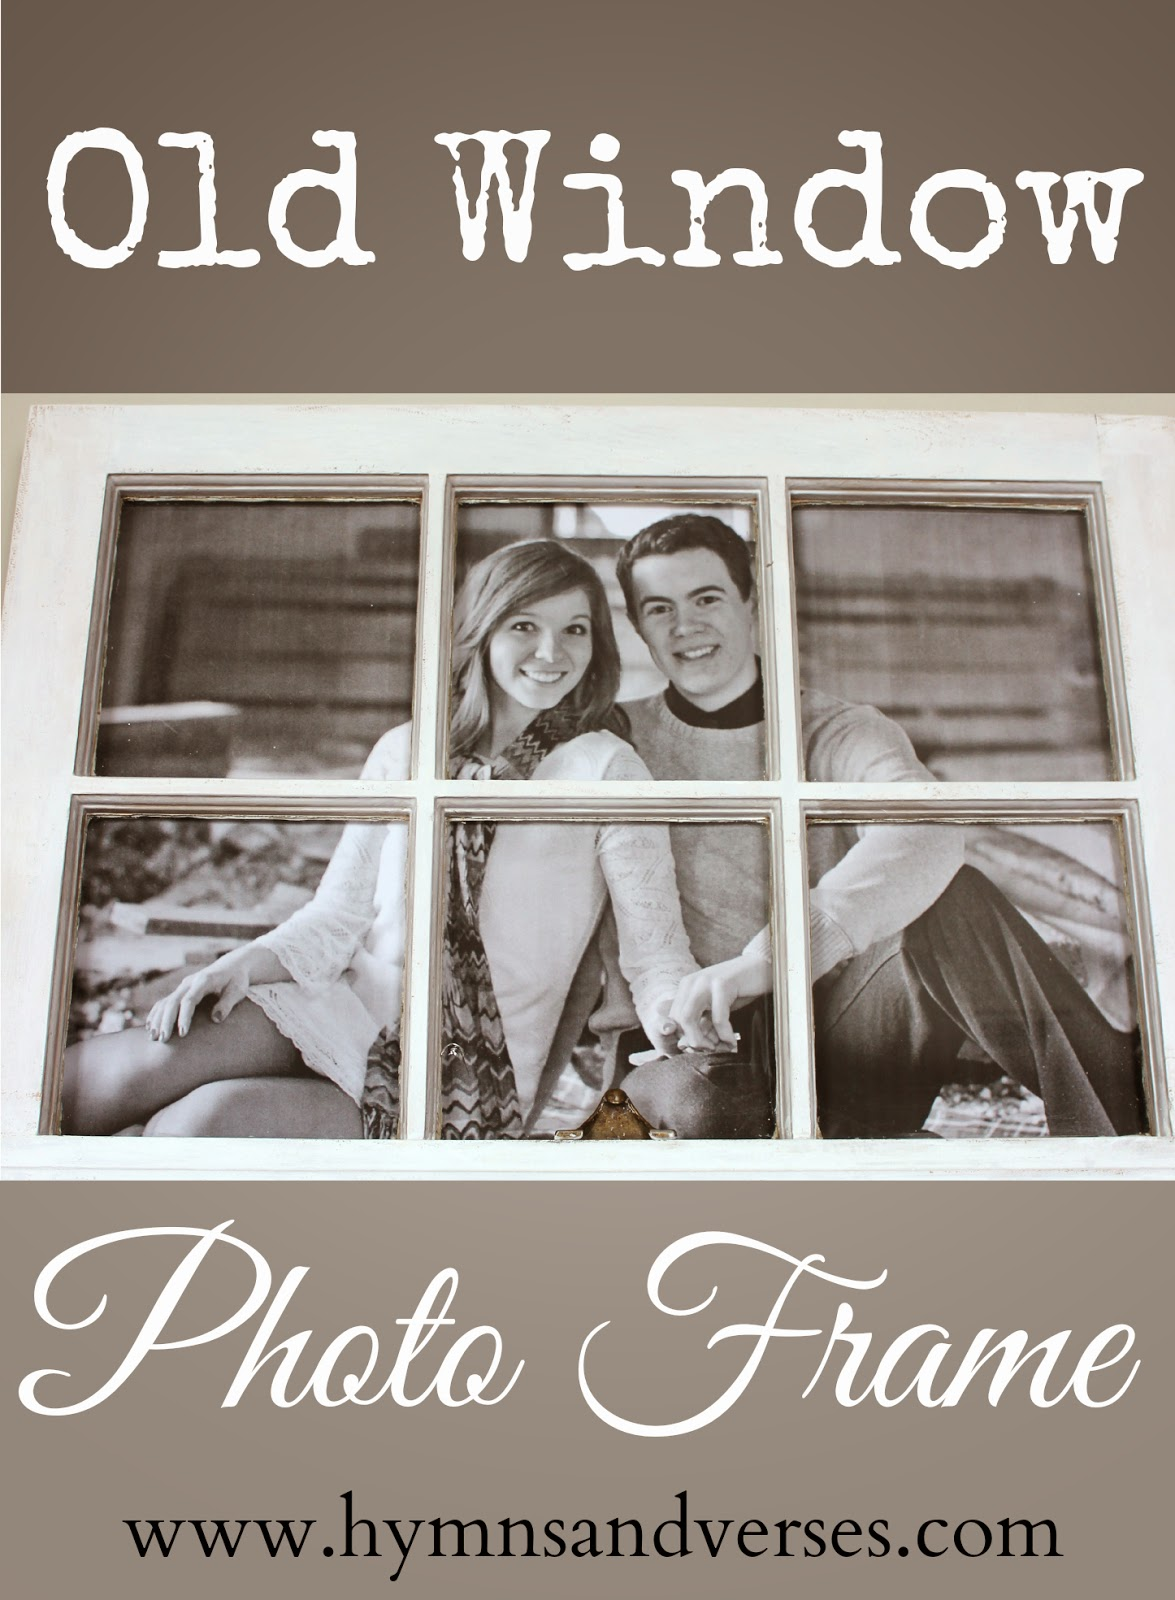 Hymns And Verses How To Turn An Old Window Into A Photo Frame